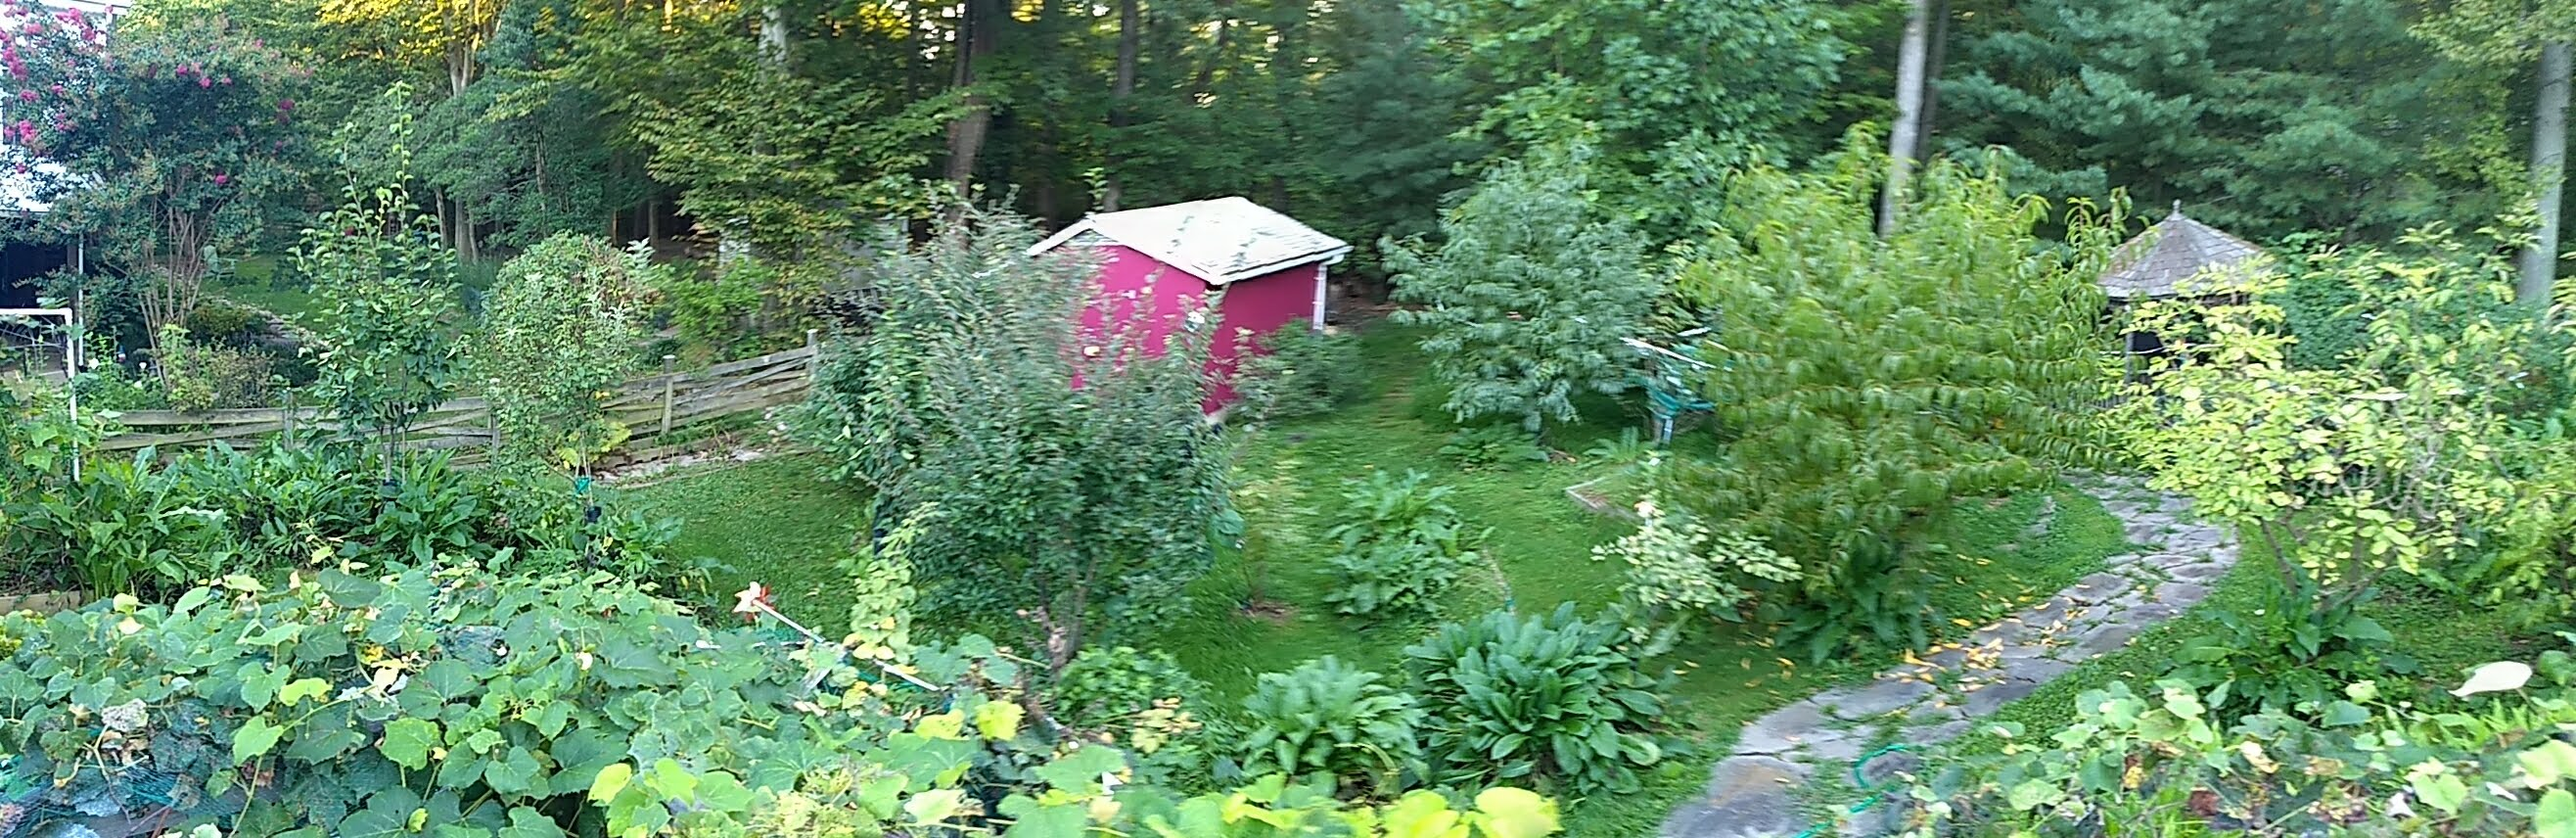 How To Create Permaculture Gardens In The Suburbs ... Permaculture Food Garden Design on modern garden design, veggie garden design, herb garden design, landscape design, companion planting garden design, high tunnel garden design, vegetable garden design, horticultural therapy garden design, water garden design, simple house garden design, forest garden design, bioretention garden design, swale garden design, bioshelter design, livestock garden design, xeriscape garden design, home garden design, keyhole garden design, cutting flowers garden design, sustainable garden design,